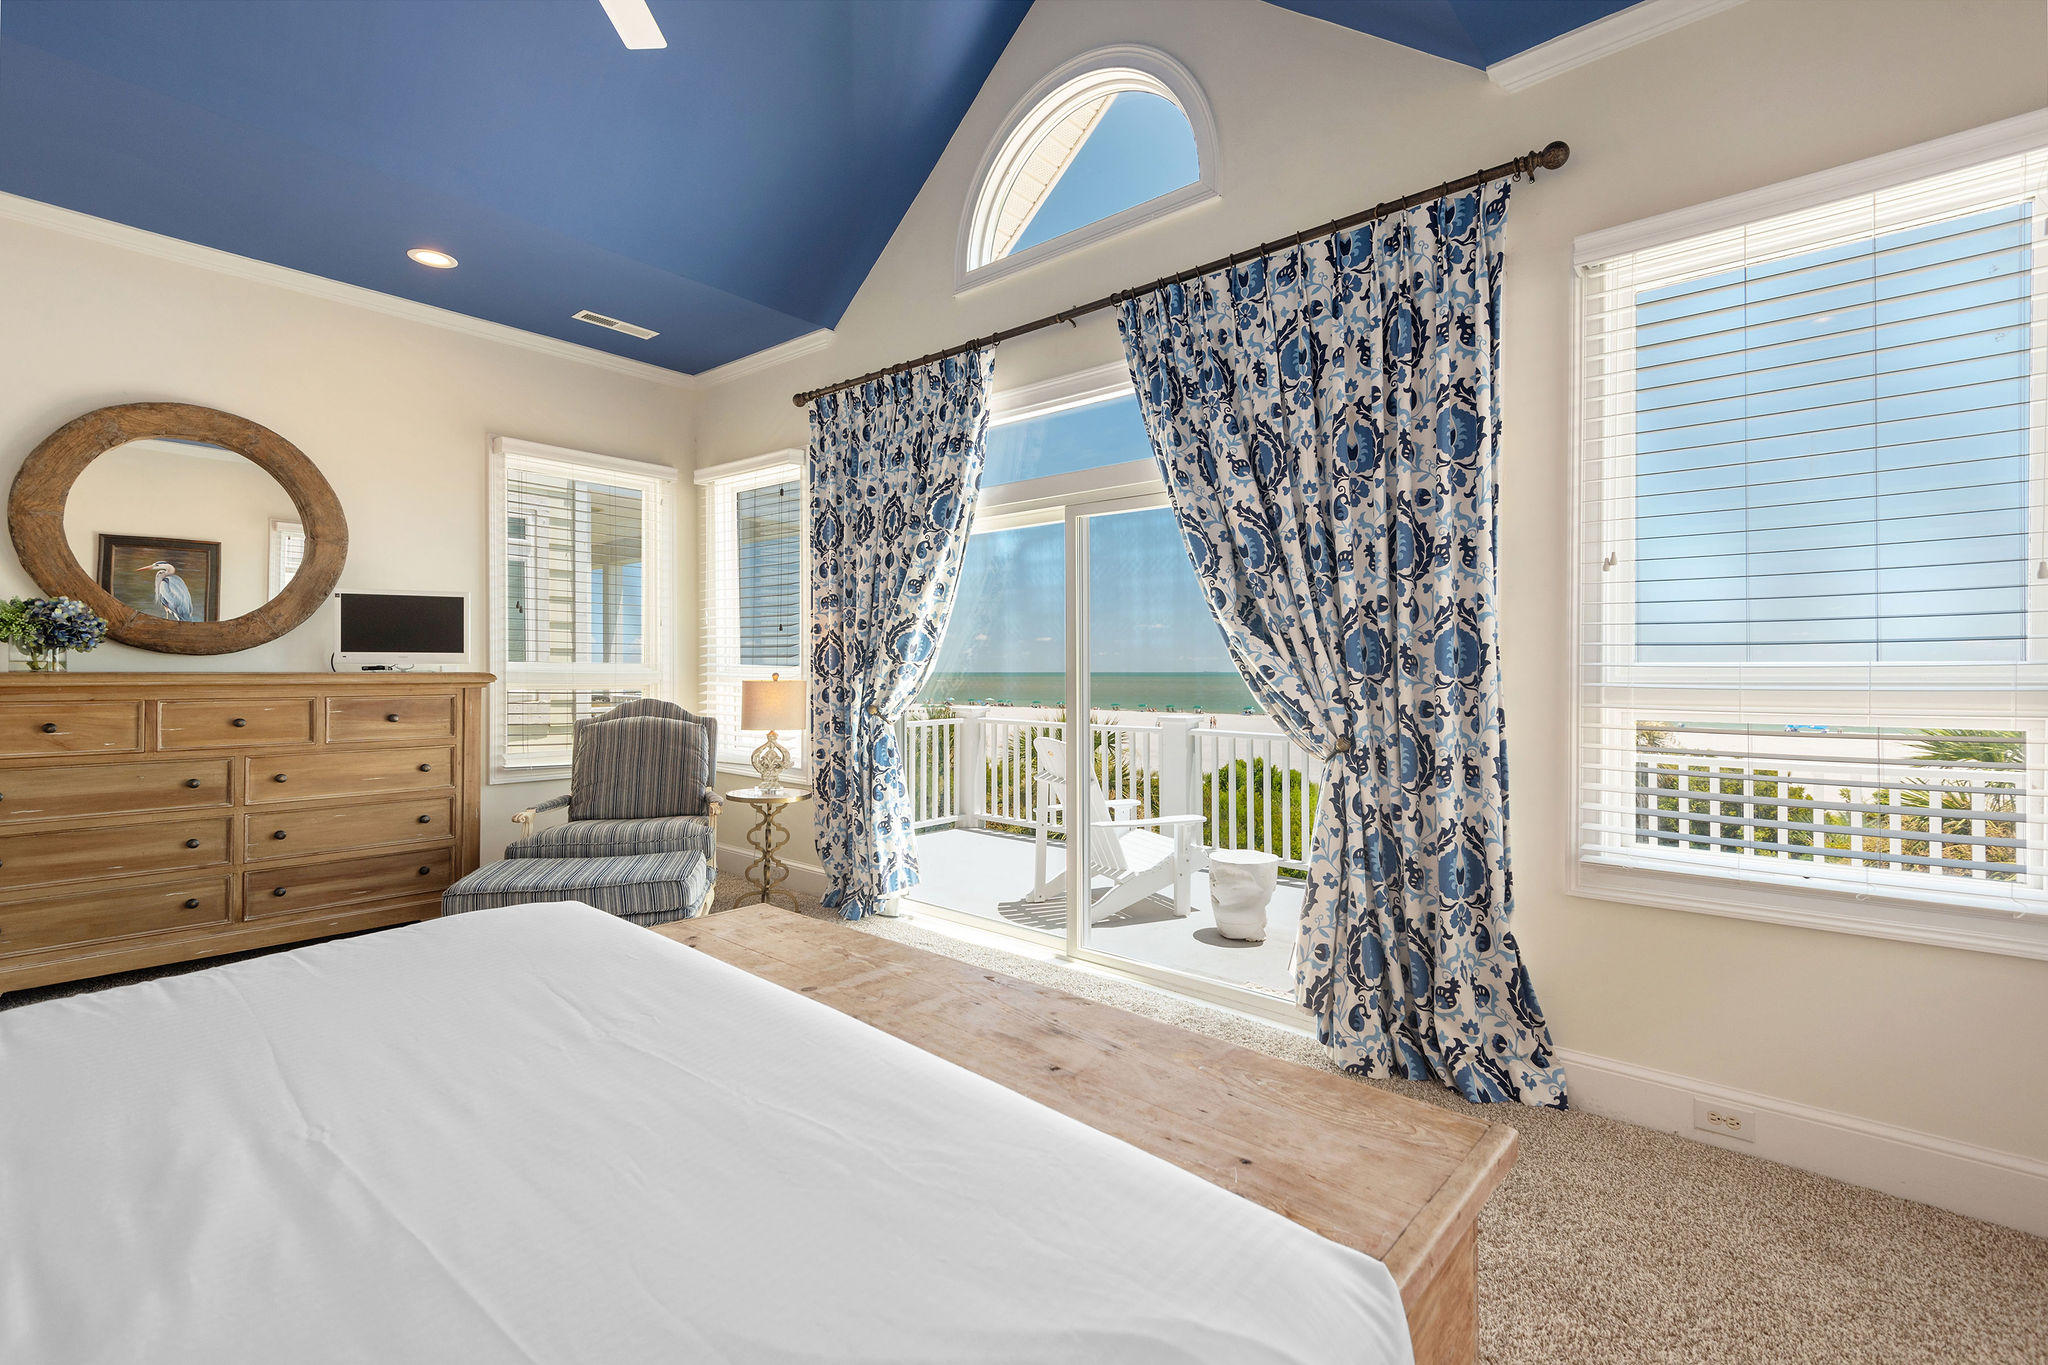 Wild Dunes Homes For Sale - 15 Grand Pavilion, Isle of Palms, SC - 34